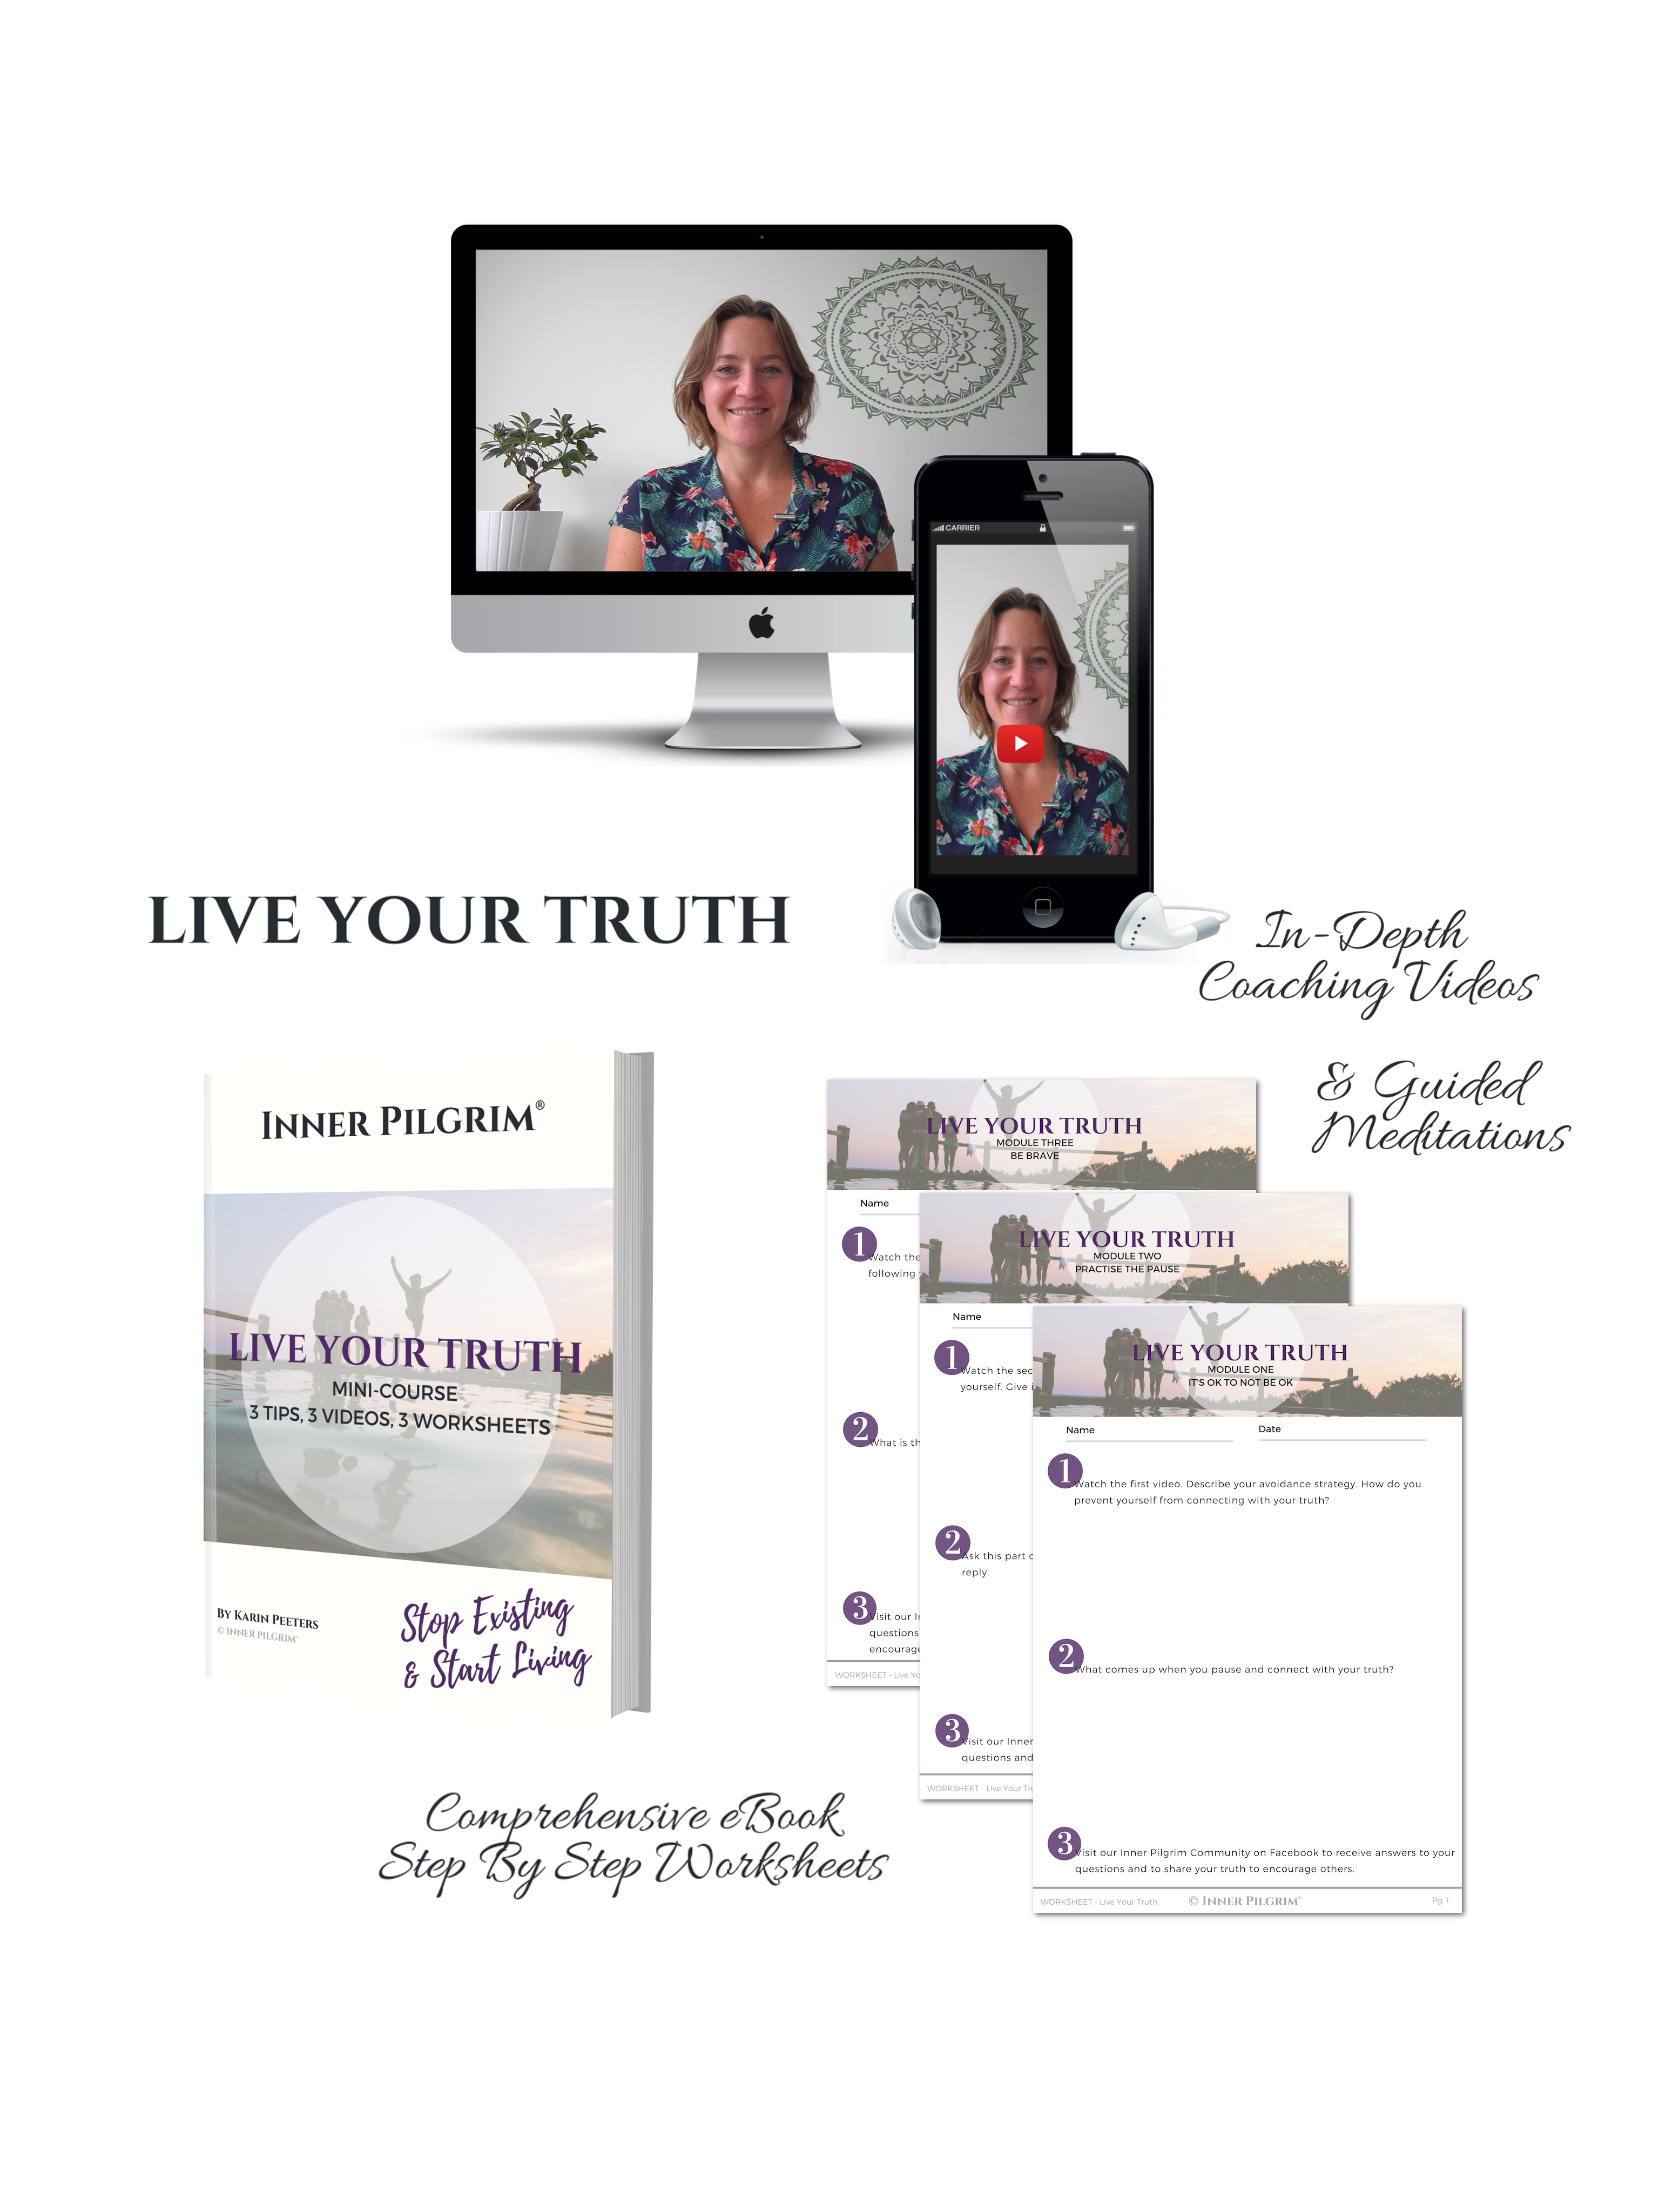 Live Your Truth Free Mini-Course